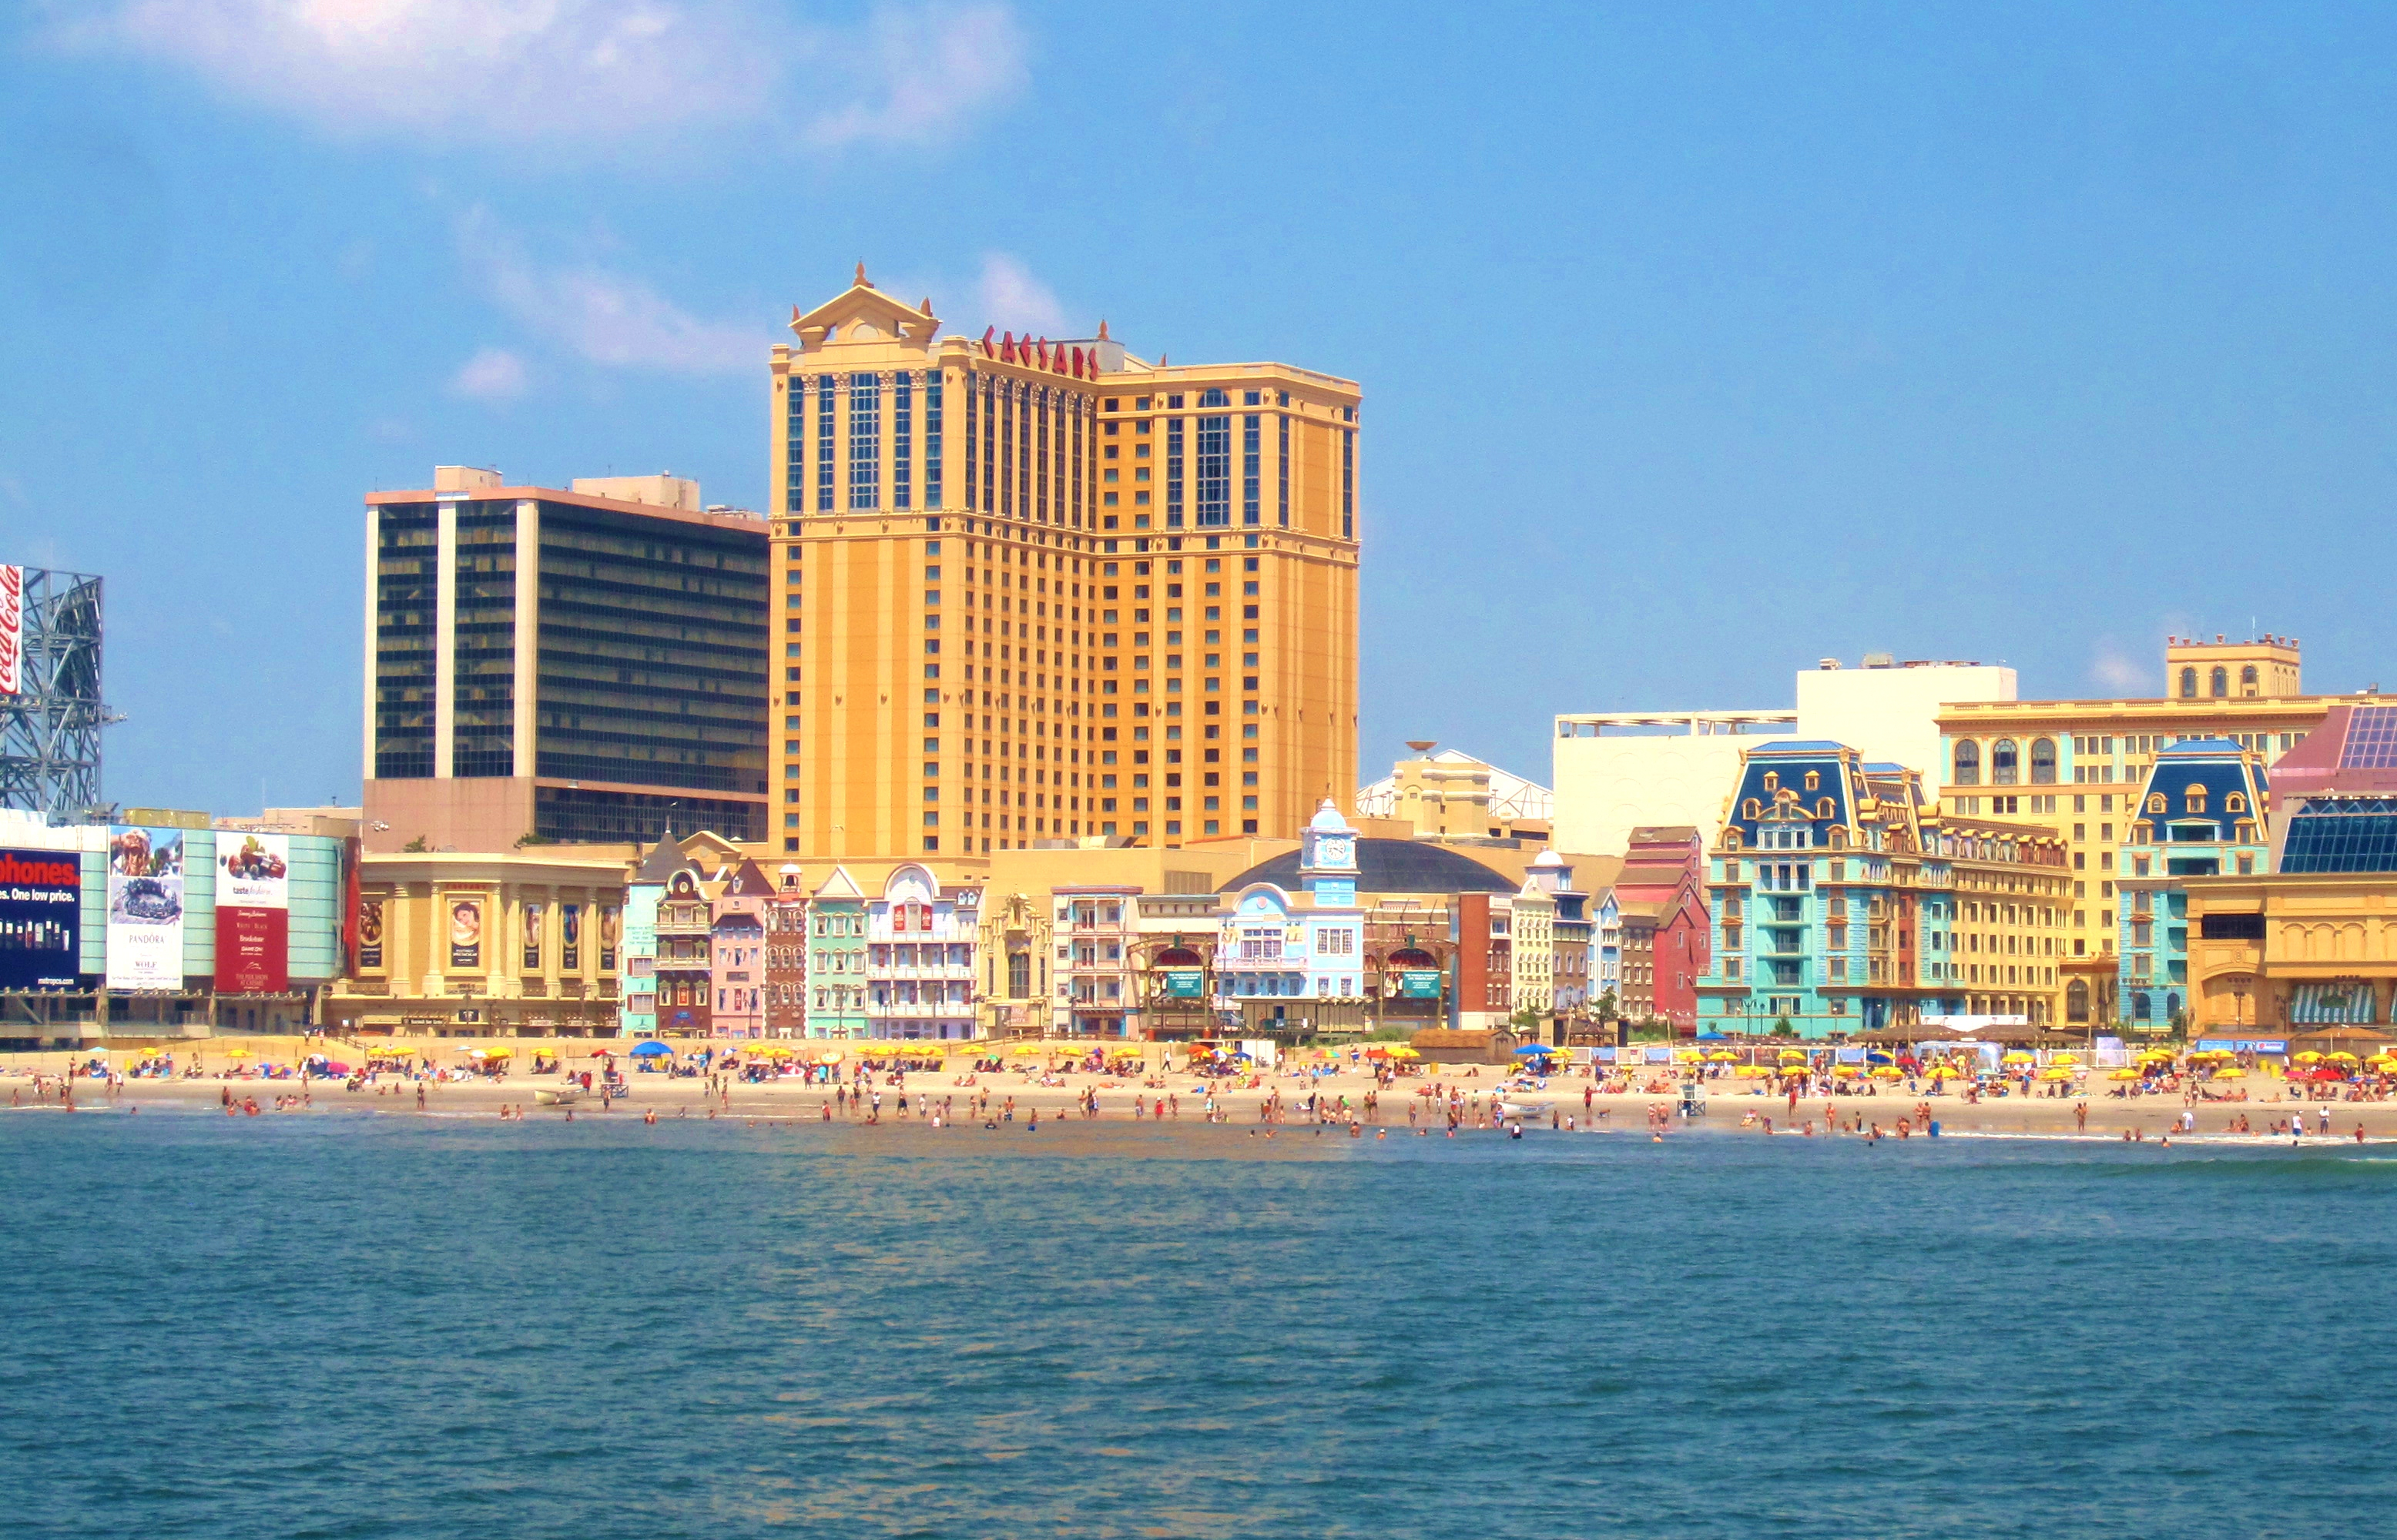 cheapest casino hotel rooms in atlantic city